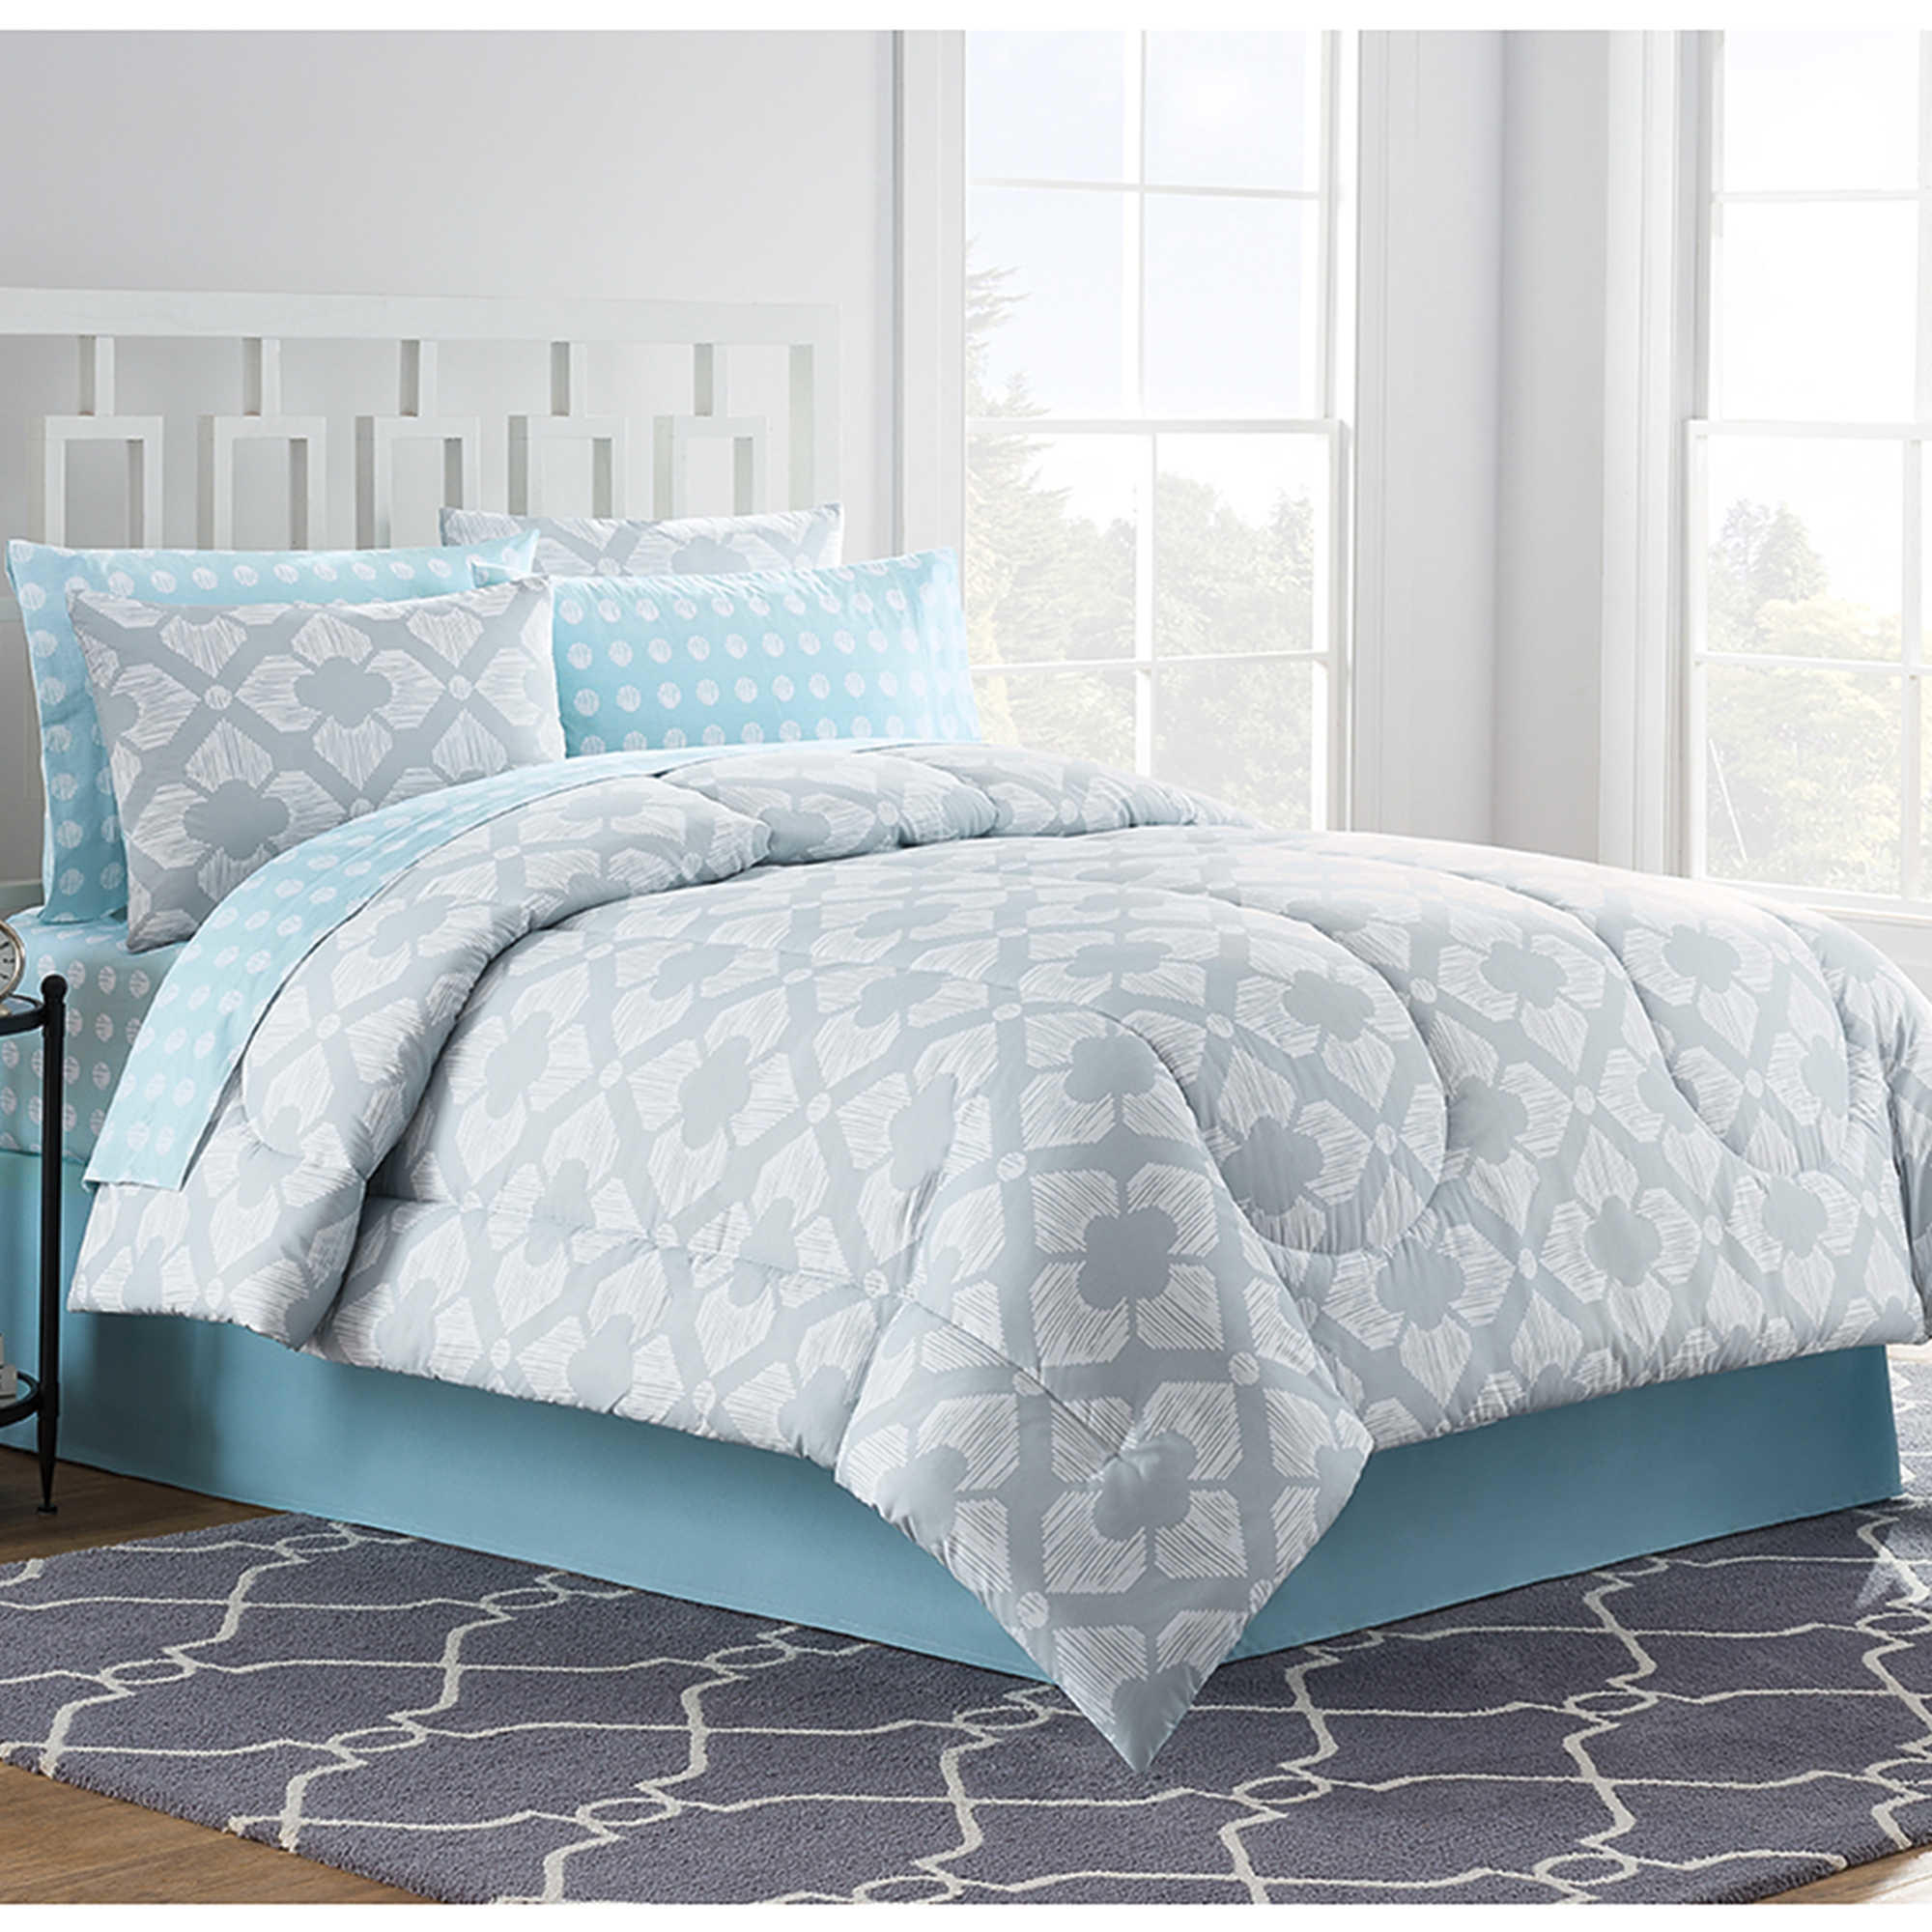 Chandra forter Set in Light Grey from Bed Bath & Beyond